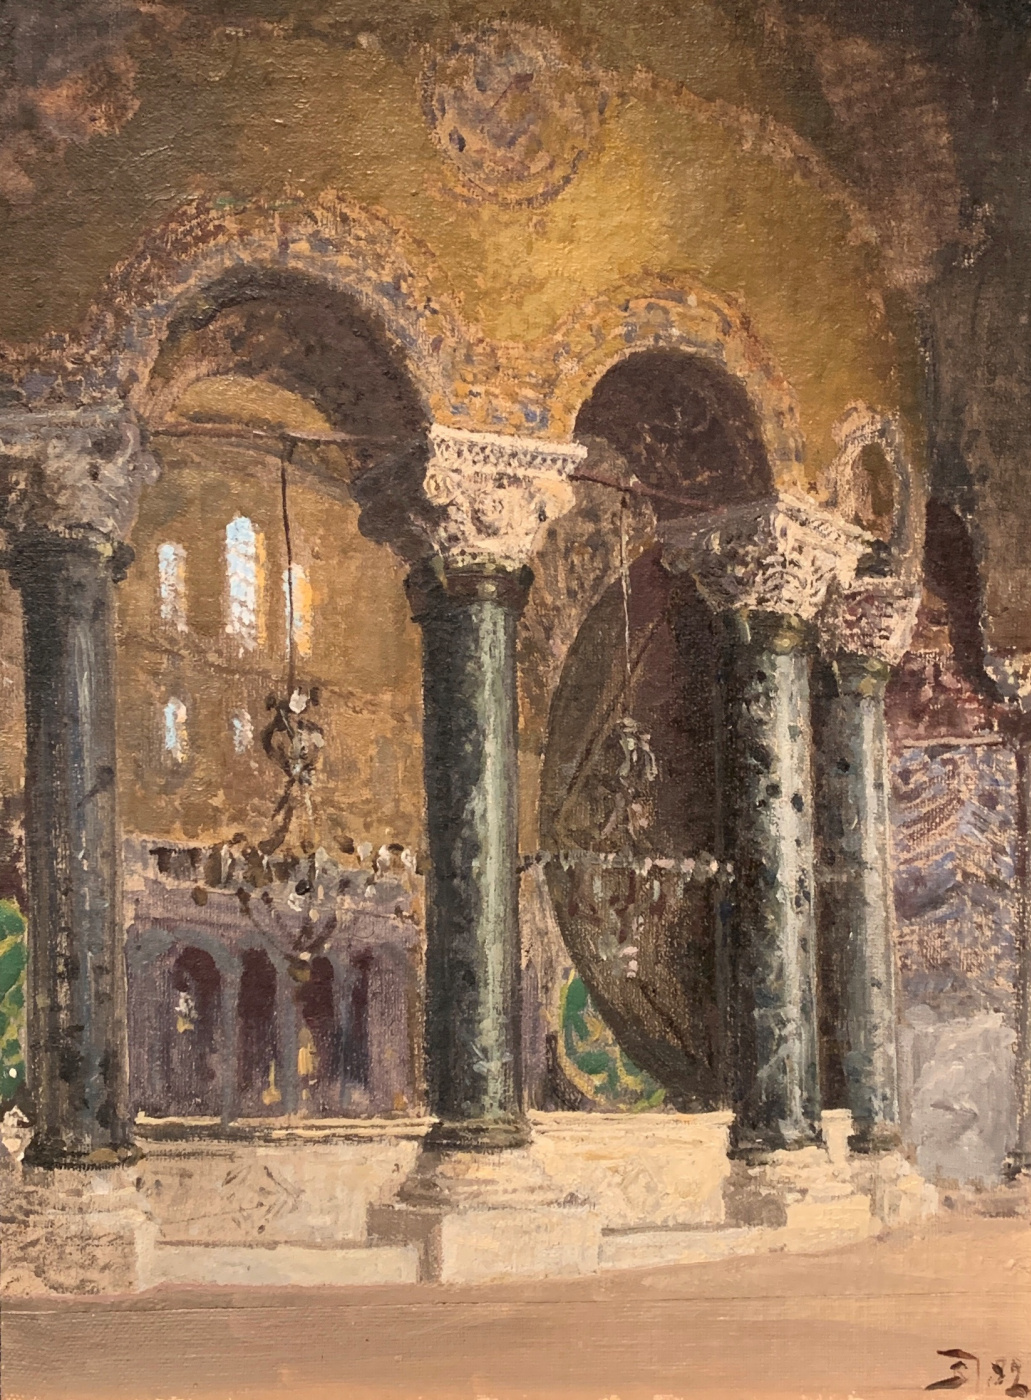 Vasily Dmitrievich Polenov. At the choirs of the Temple of Sofia in Constantinople (Istanbul)